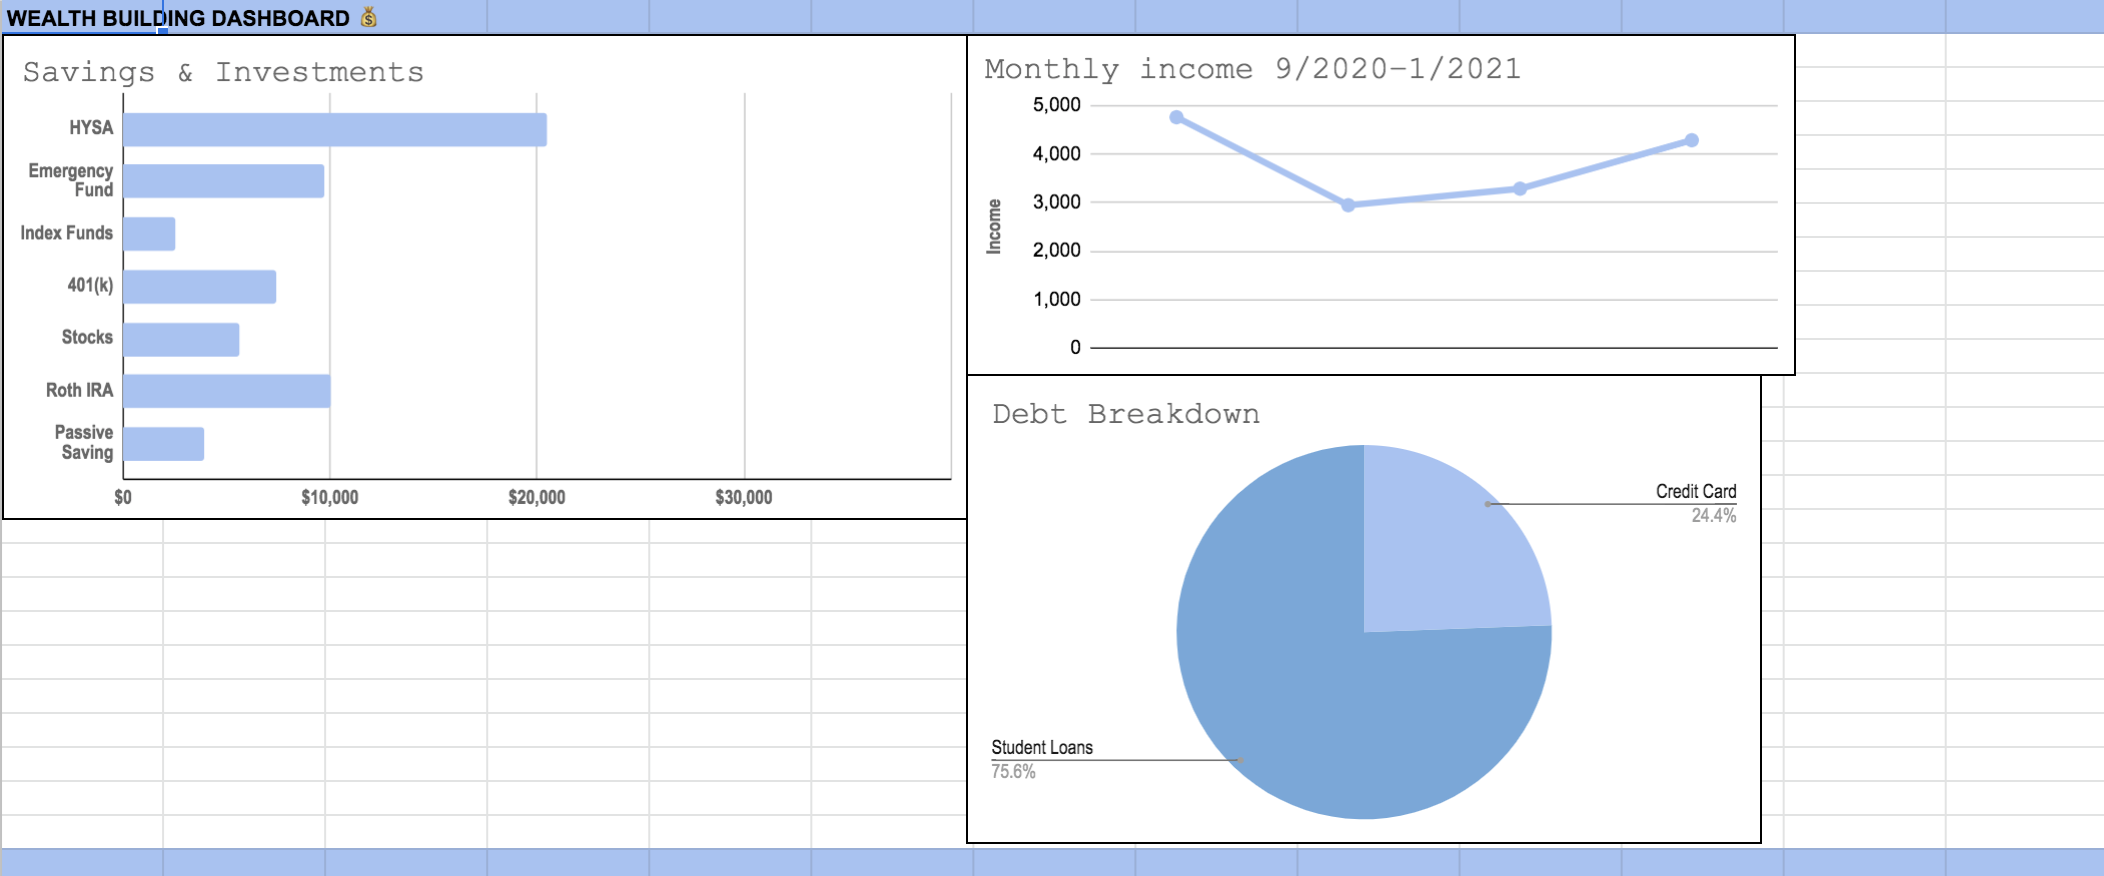 Dashboard showing savings bar graph, income line graph, and debt pie chart